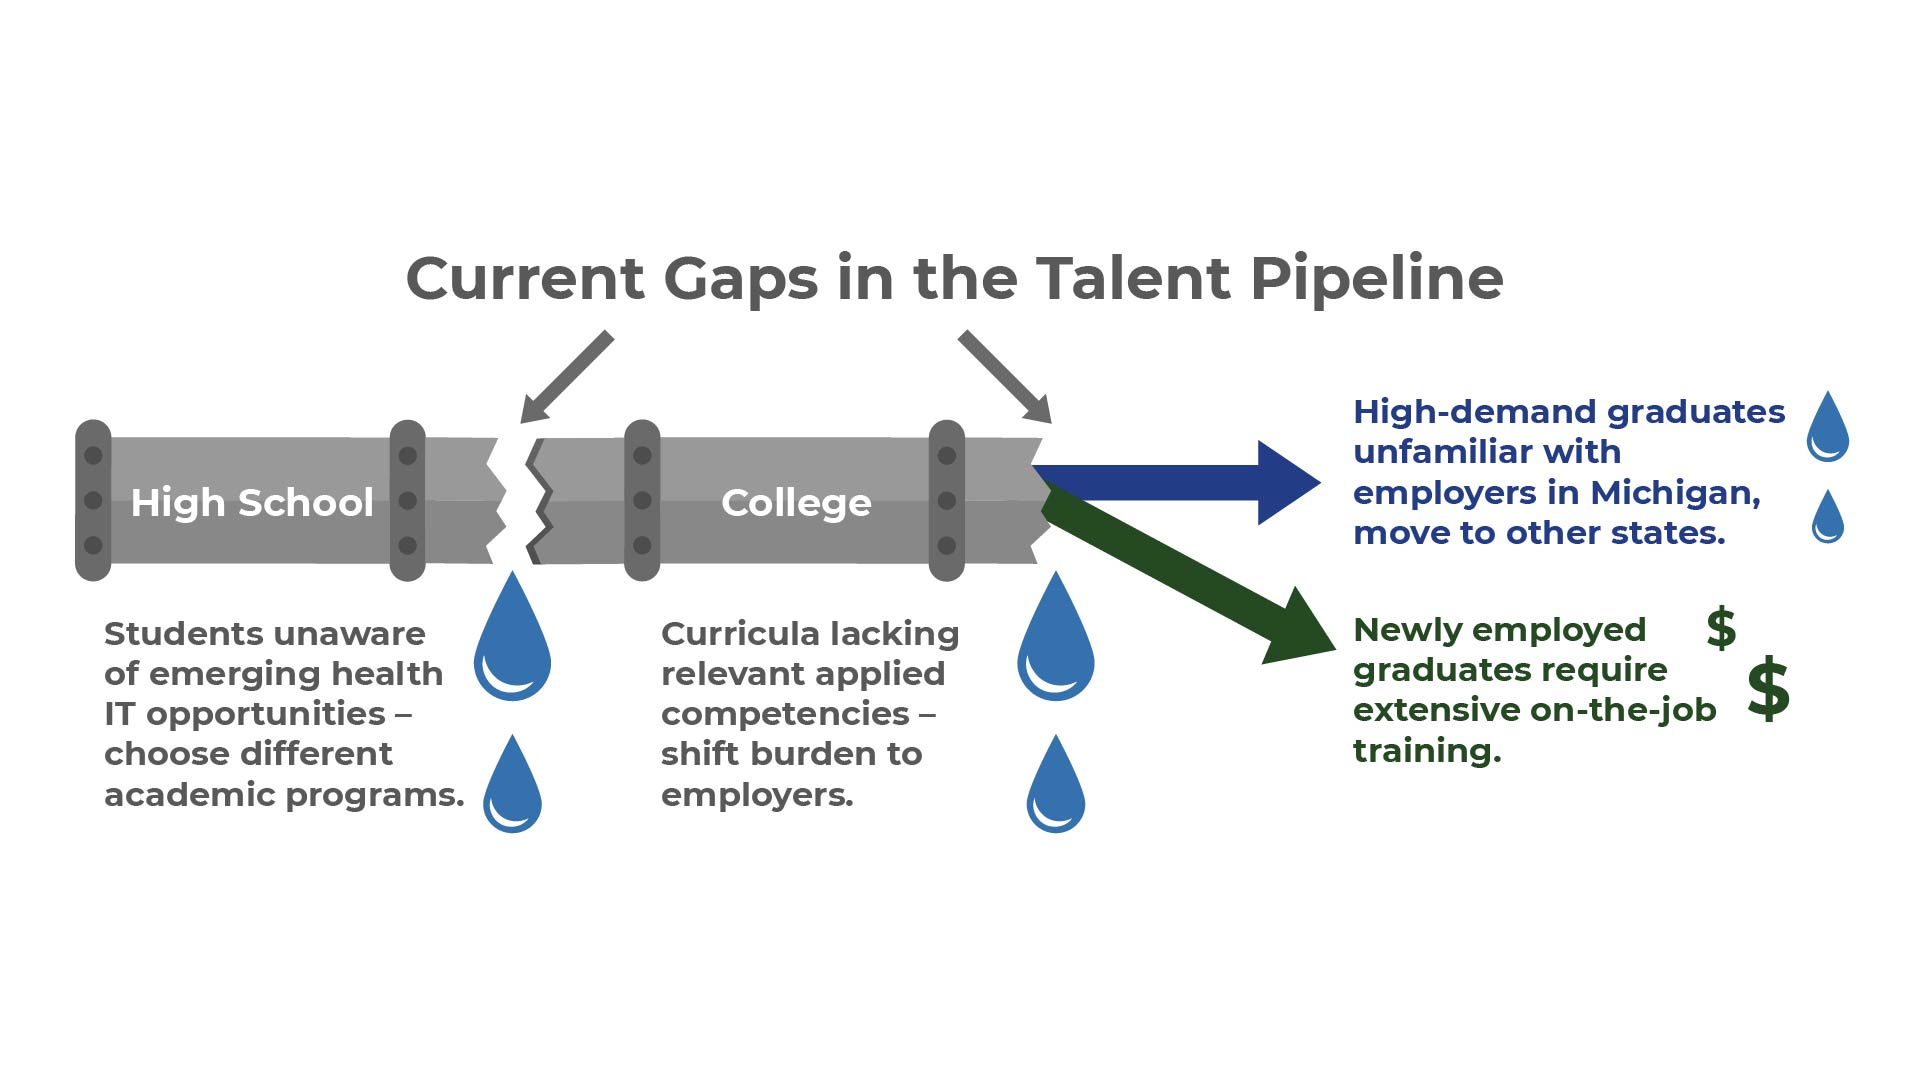 Interoperability Institute Talent Pipeline_GapsCurrent